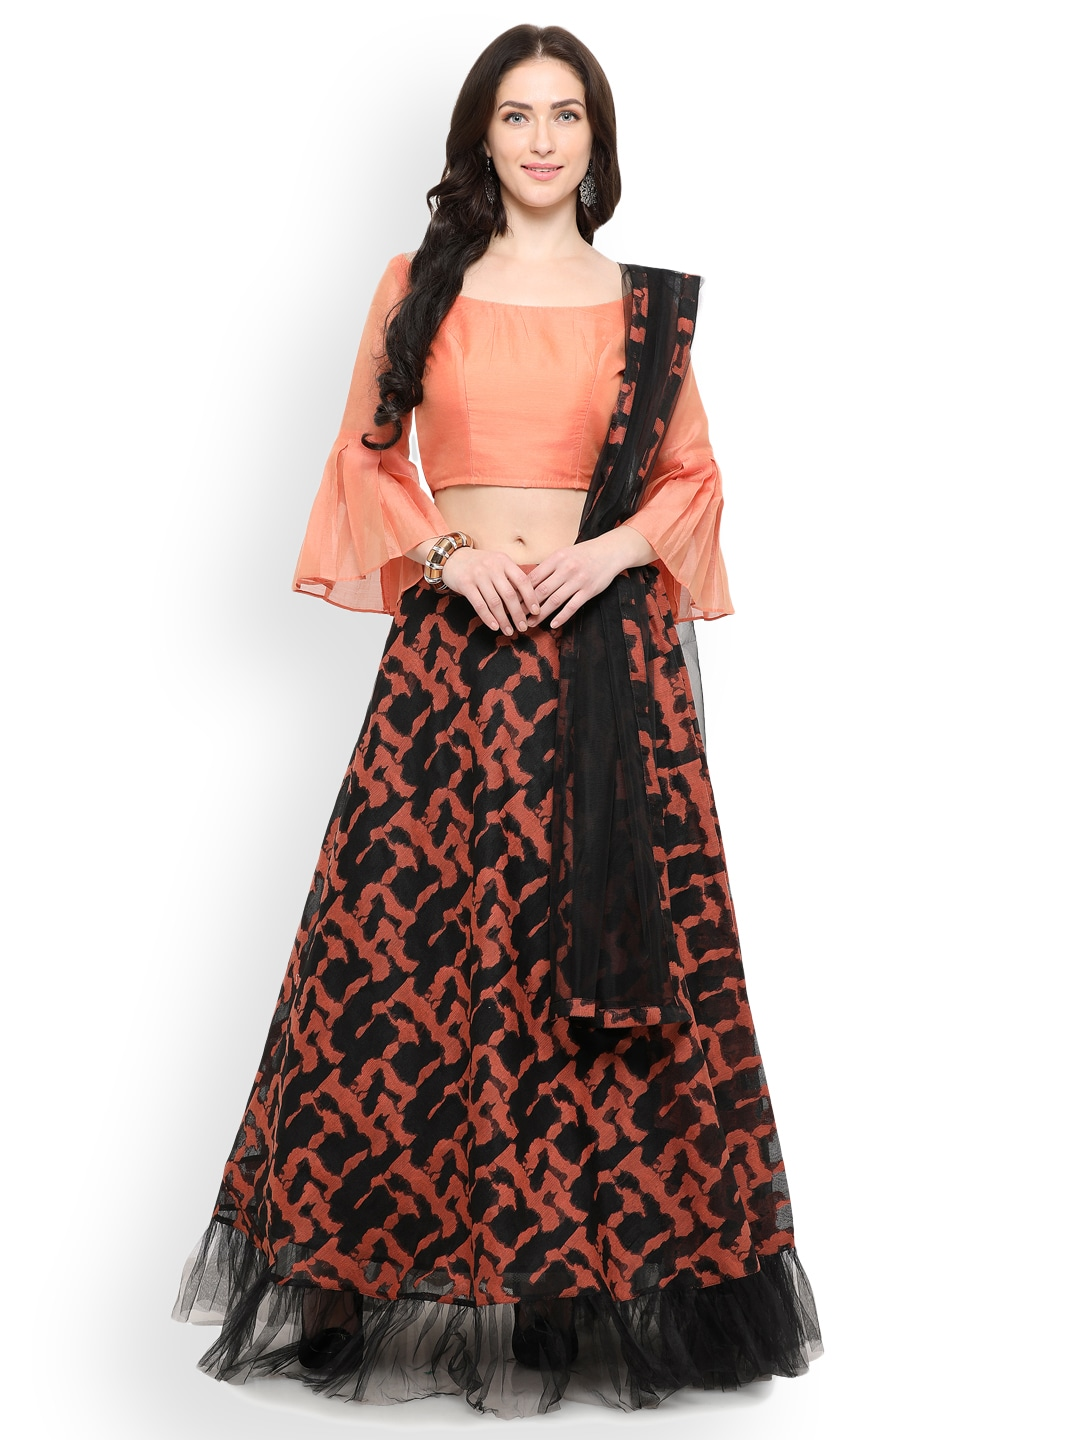 Inddus Black & Peach-Coloured Semi-Stitched Lehenga & Unstitched Blouse With Dupatta image